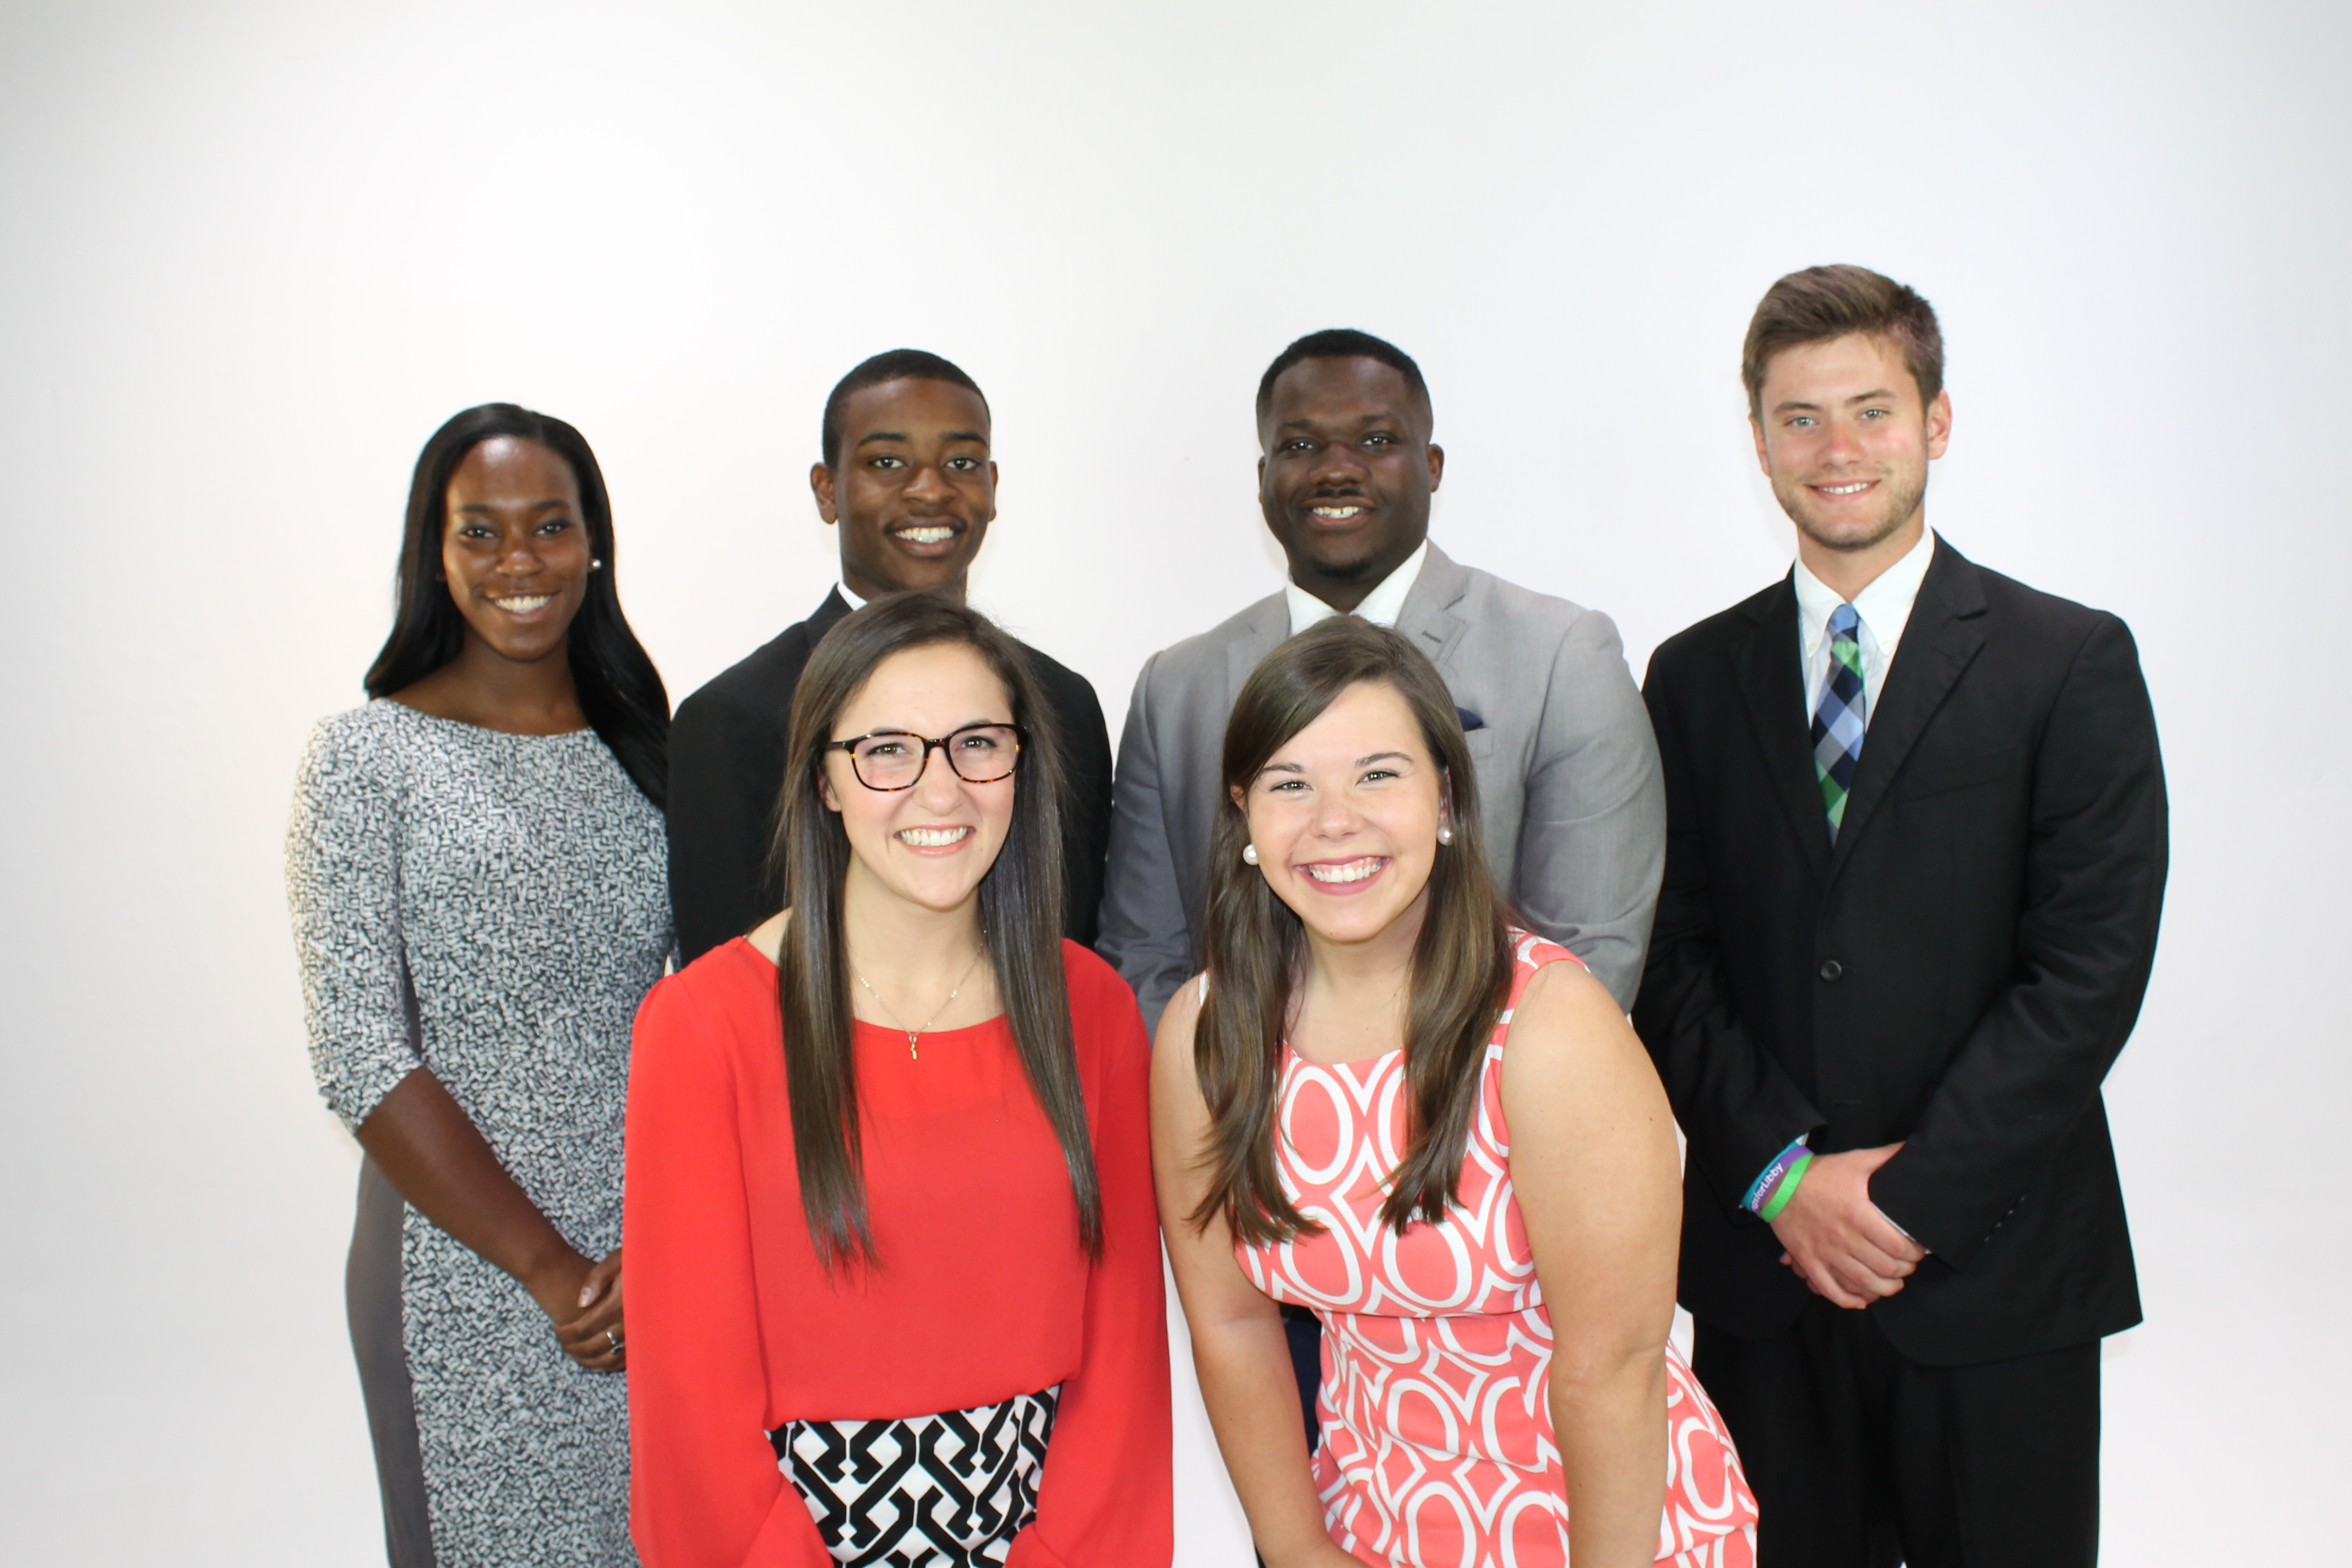 Student Government Association Officers